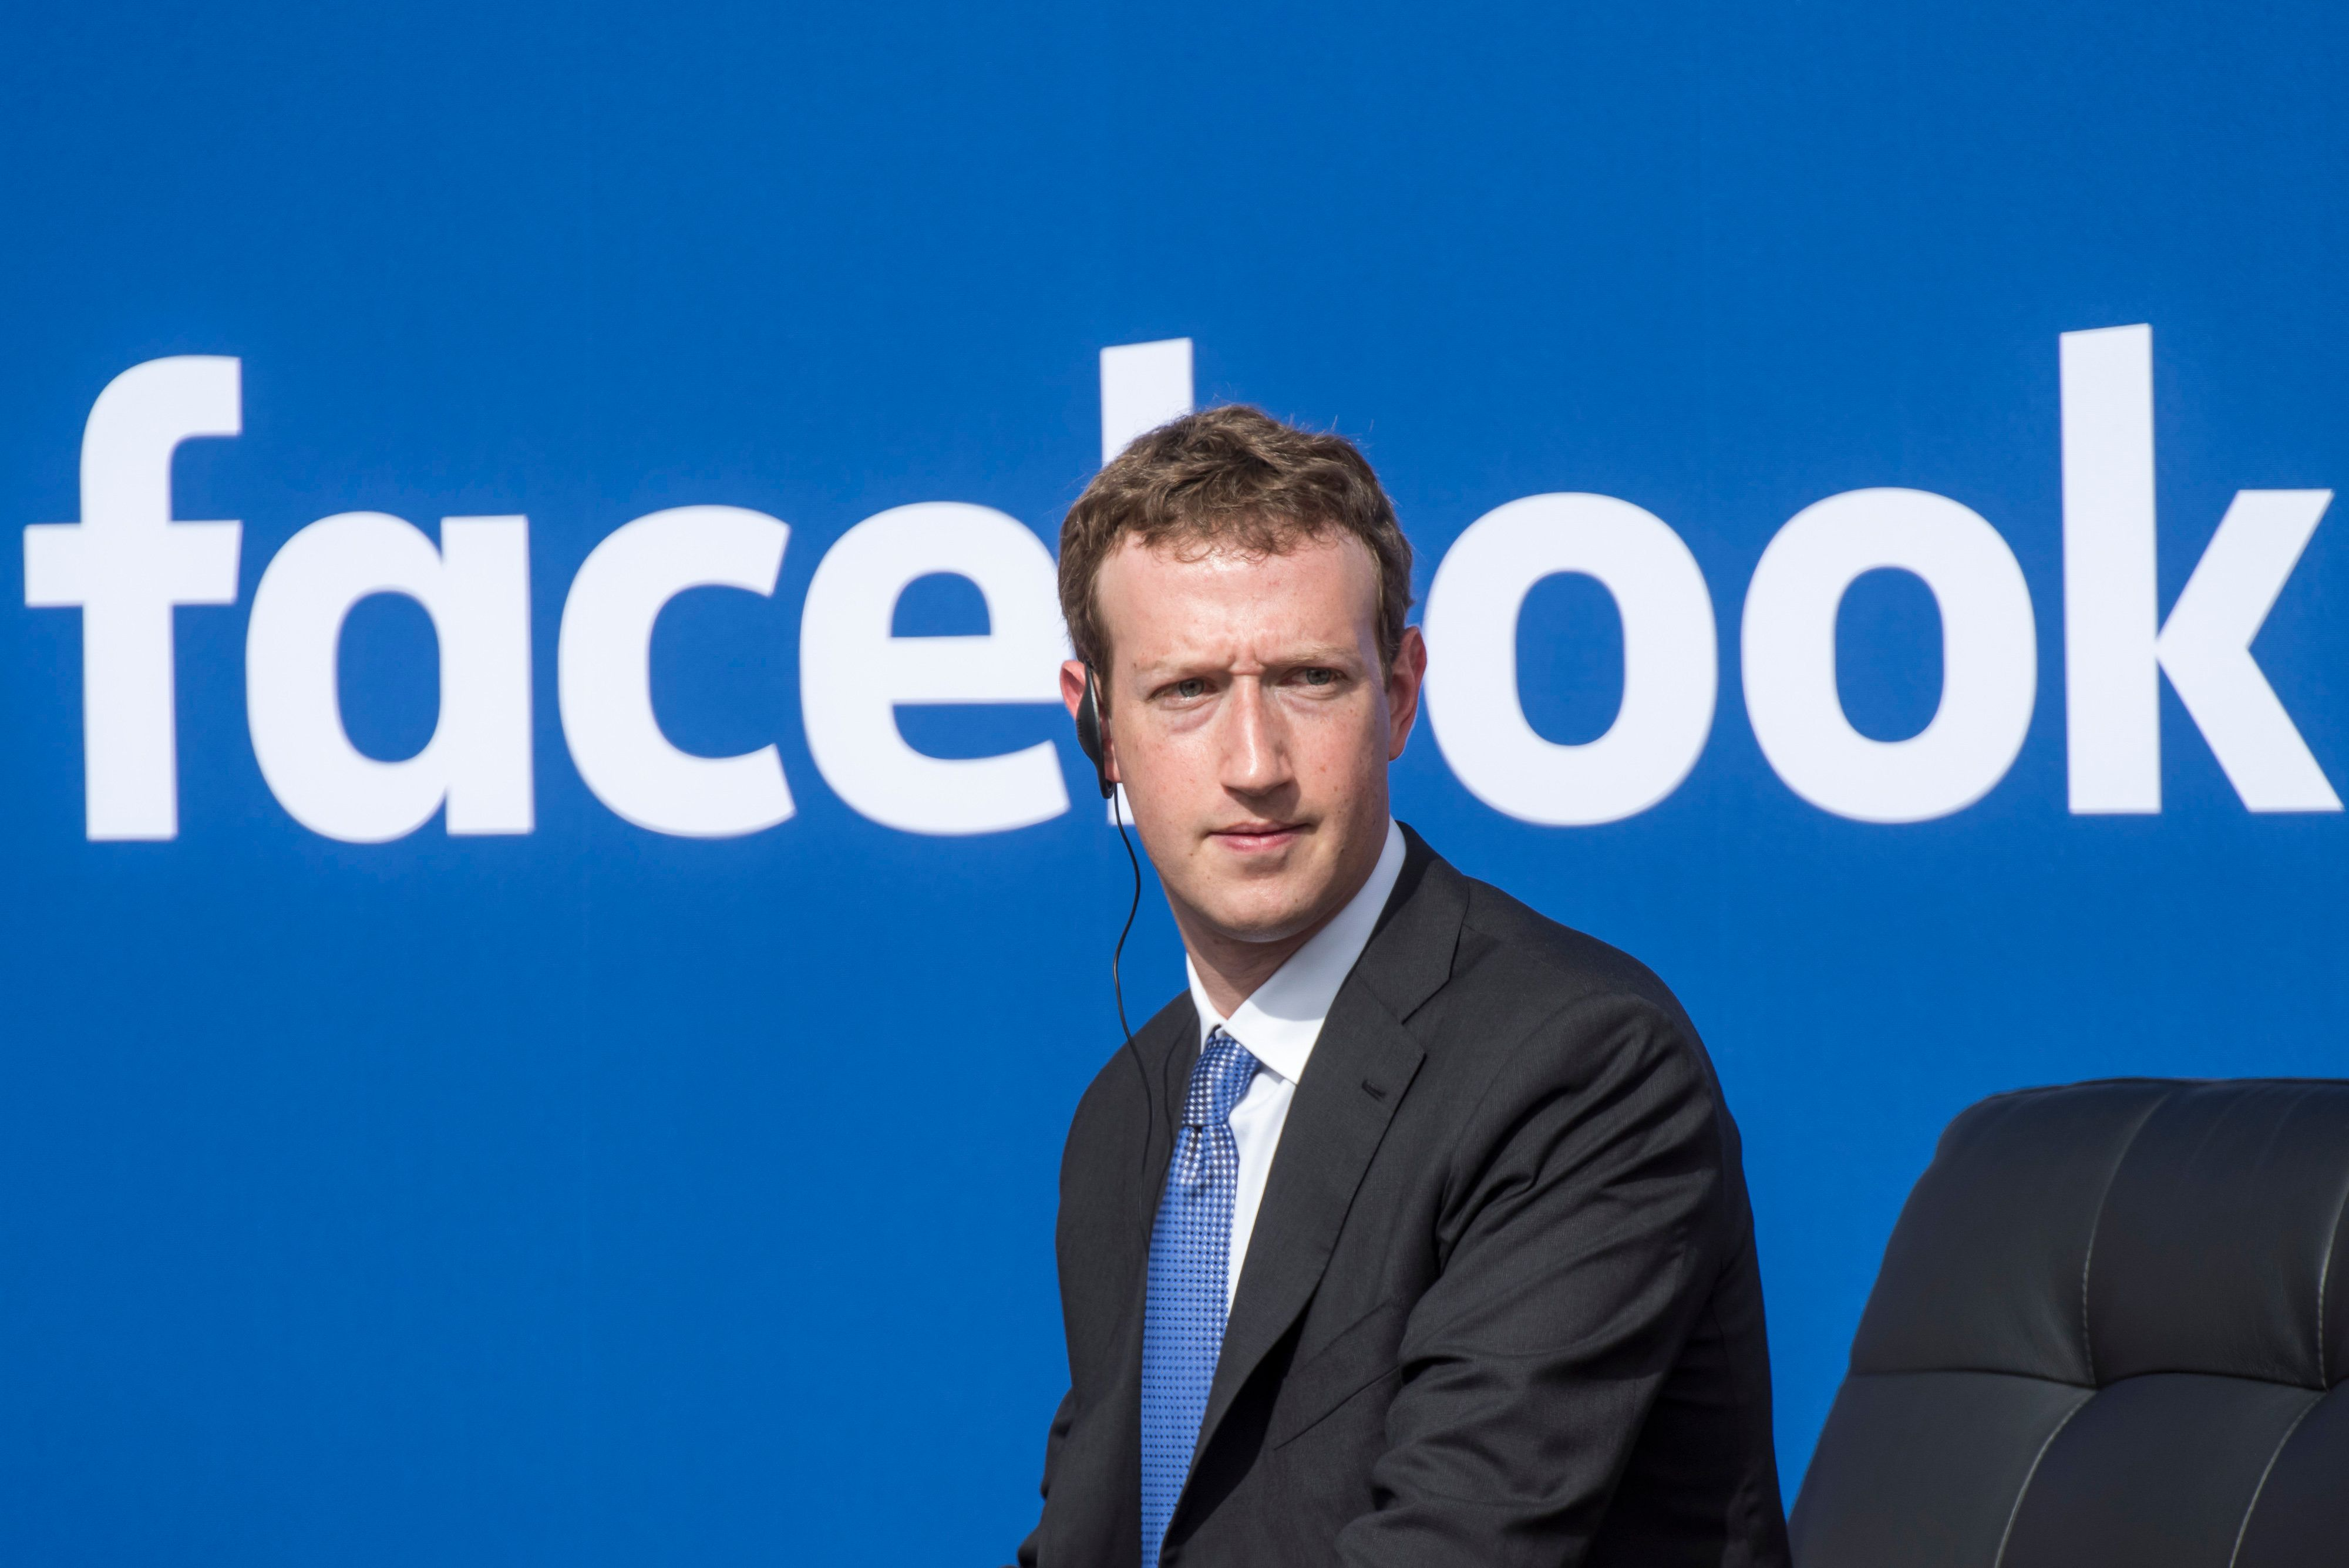 Mark Zuckerberg, chief executive officer of Facebook Inc., listens as Narendra Modi, India's prime minister, not pictured, speaks during a town hall meeting at Facebook headquarters in Menlo Park, California, U.S., on Sunday, Sept. 27, 2015. Prime Minister Modi plans on connecting 600,000 villages across India using fiber optic cable as part of his 'dream' to expand the world's largest democracy's economy to $20 trillion. Photographer: David Paul Morris/Bloomberg via Getty Images